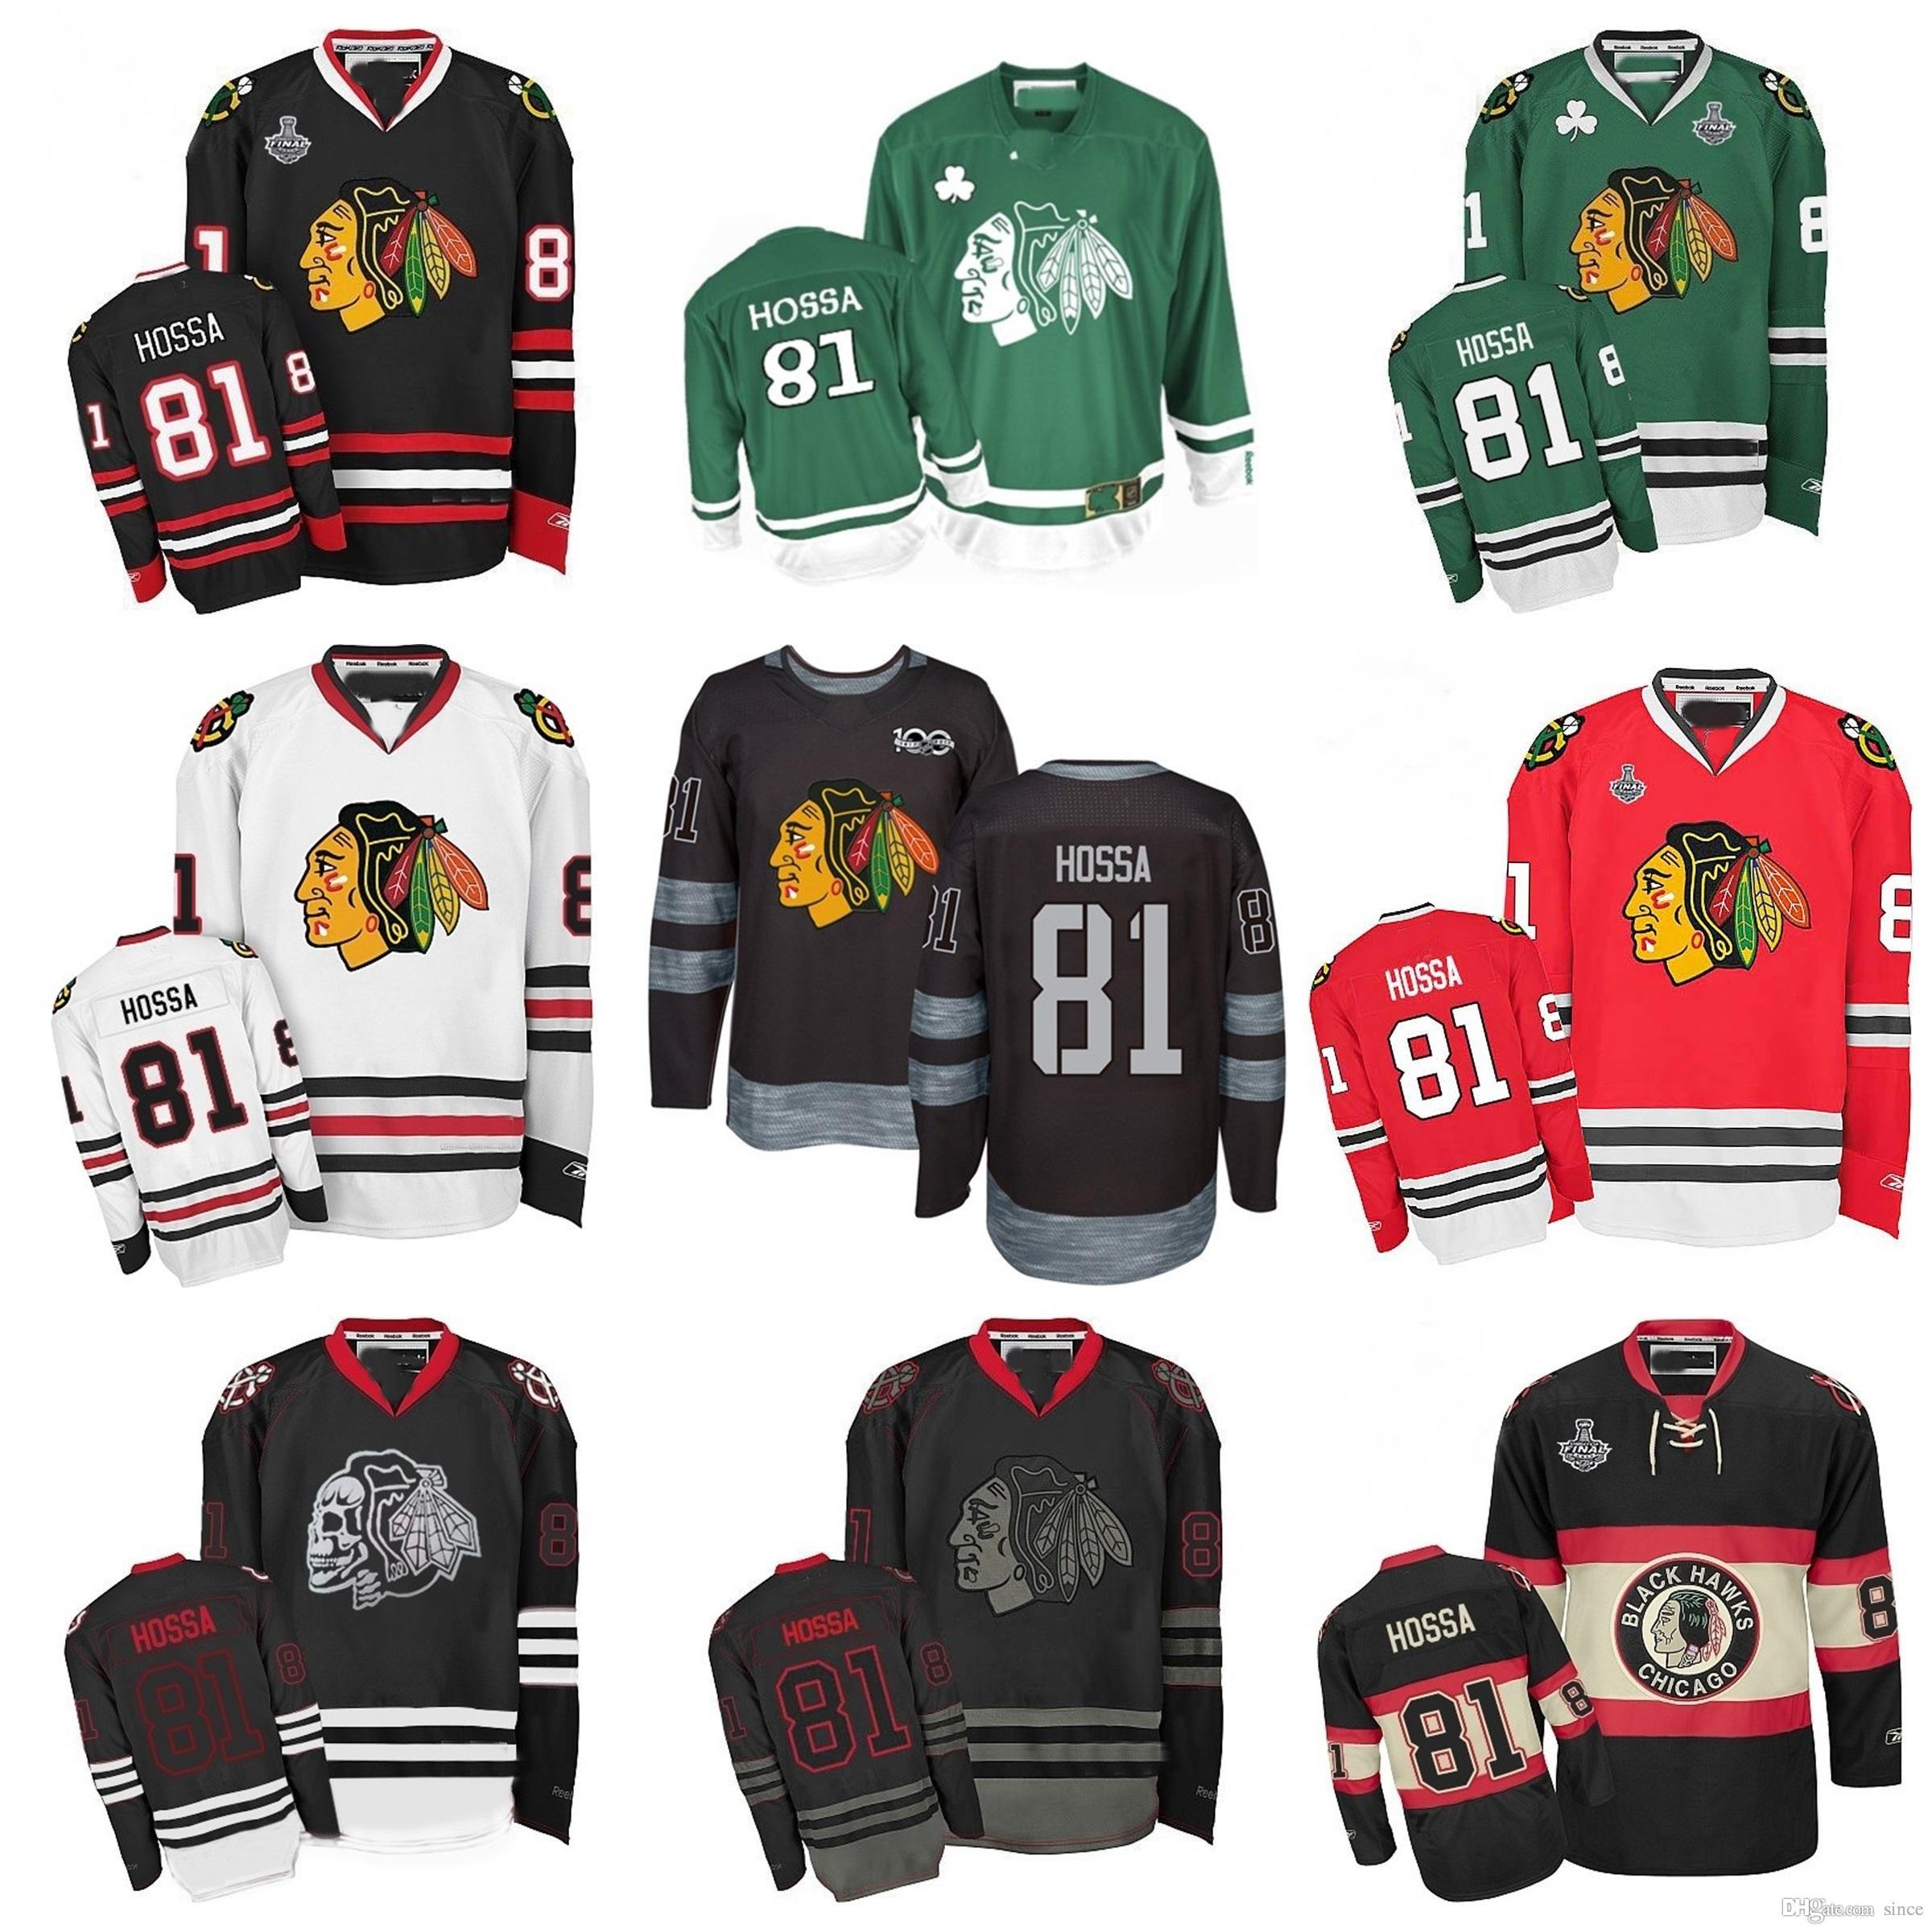 079658a7 ... authentic 2018 2016 new discount mens chicago blackhawks 81 marian  hossa jersey 2015 winter classic red